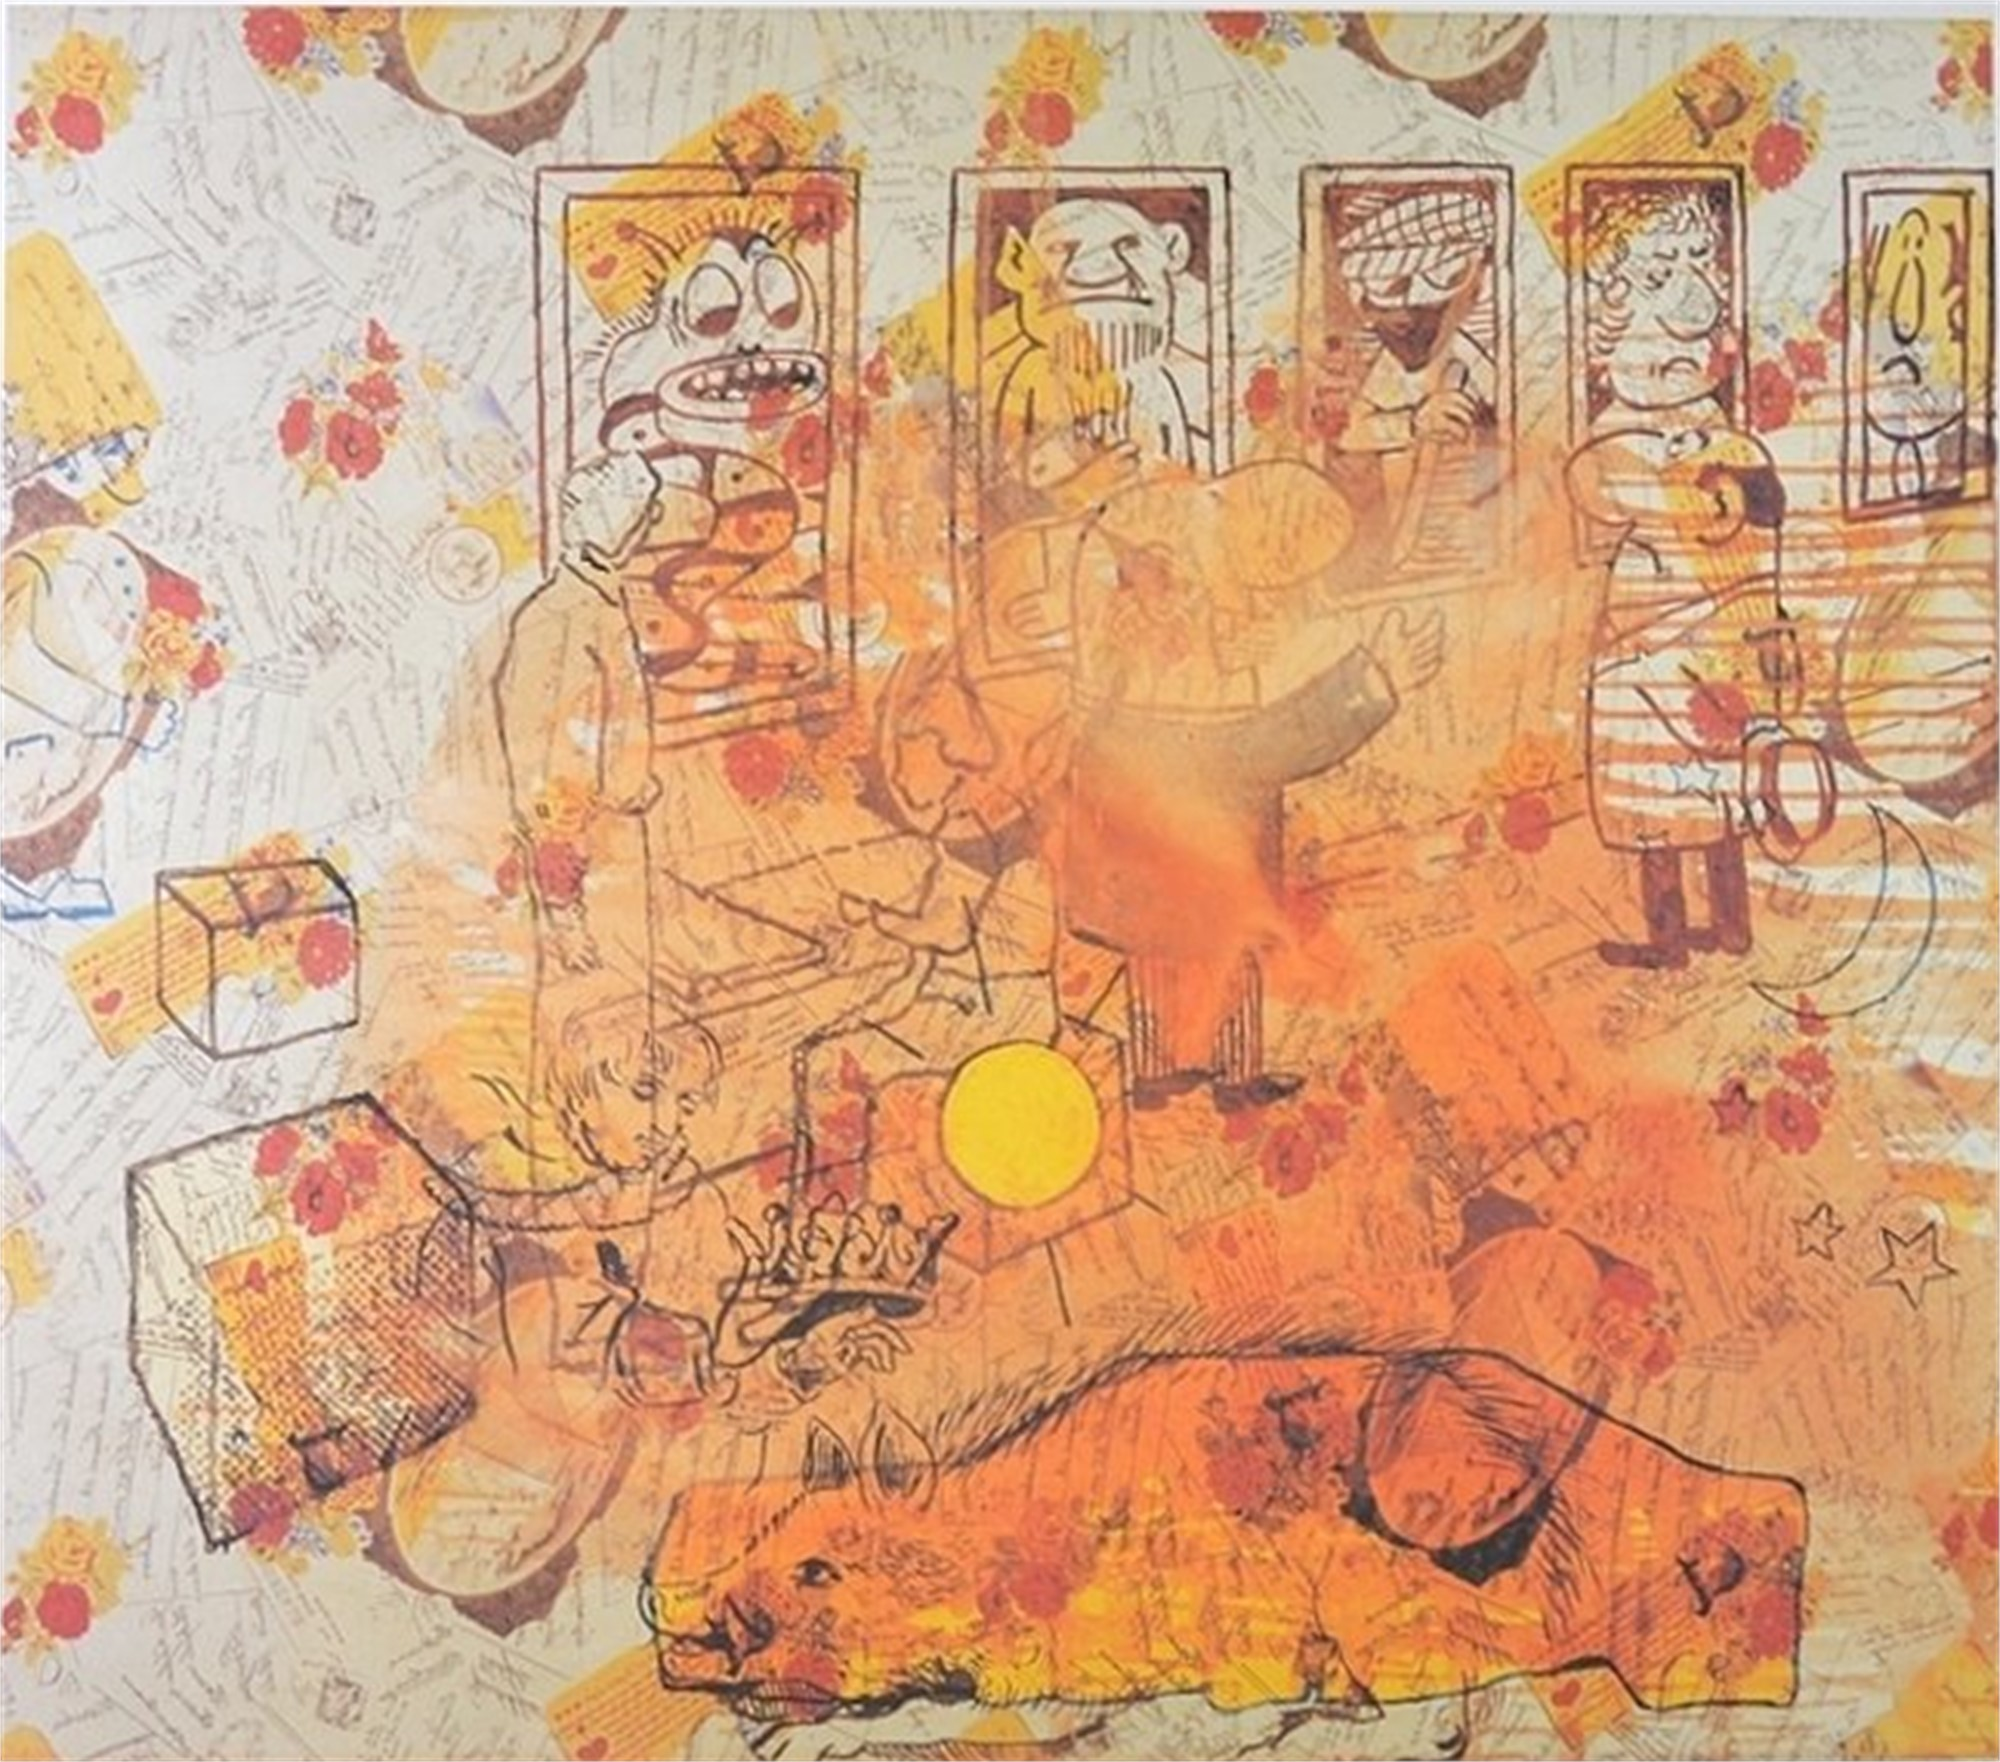 Ahnengalerie by Sigmar Polke